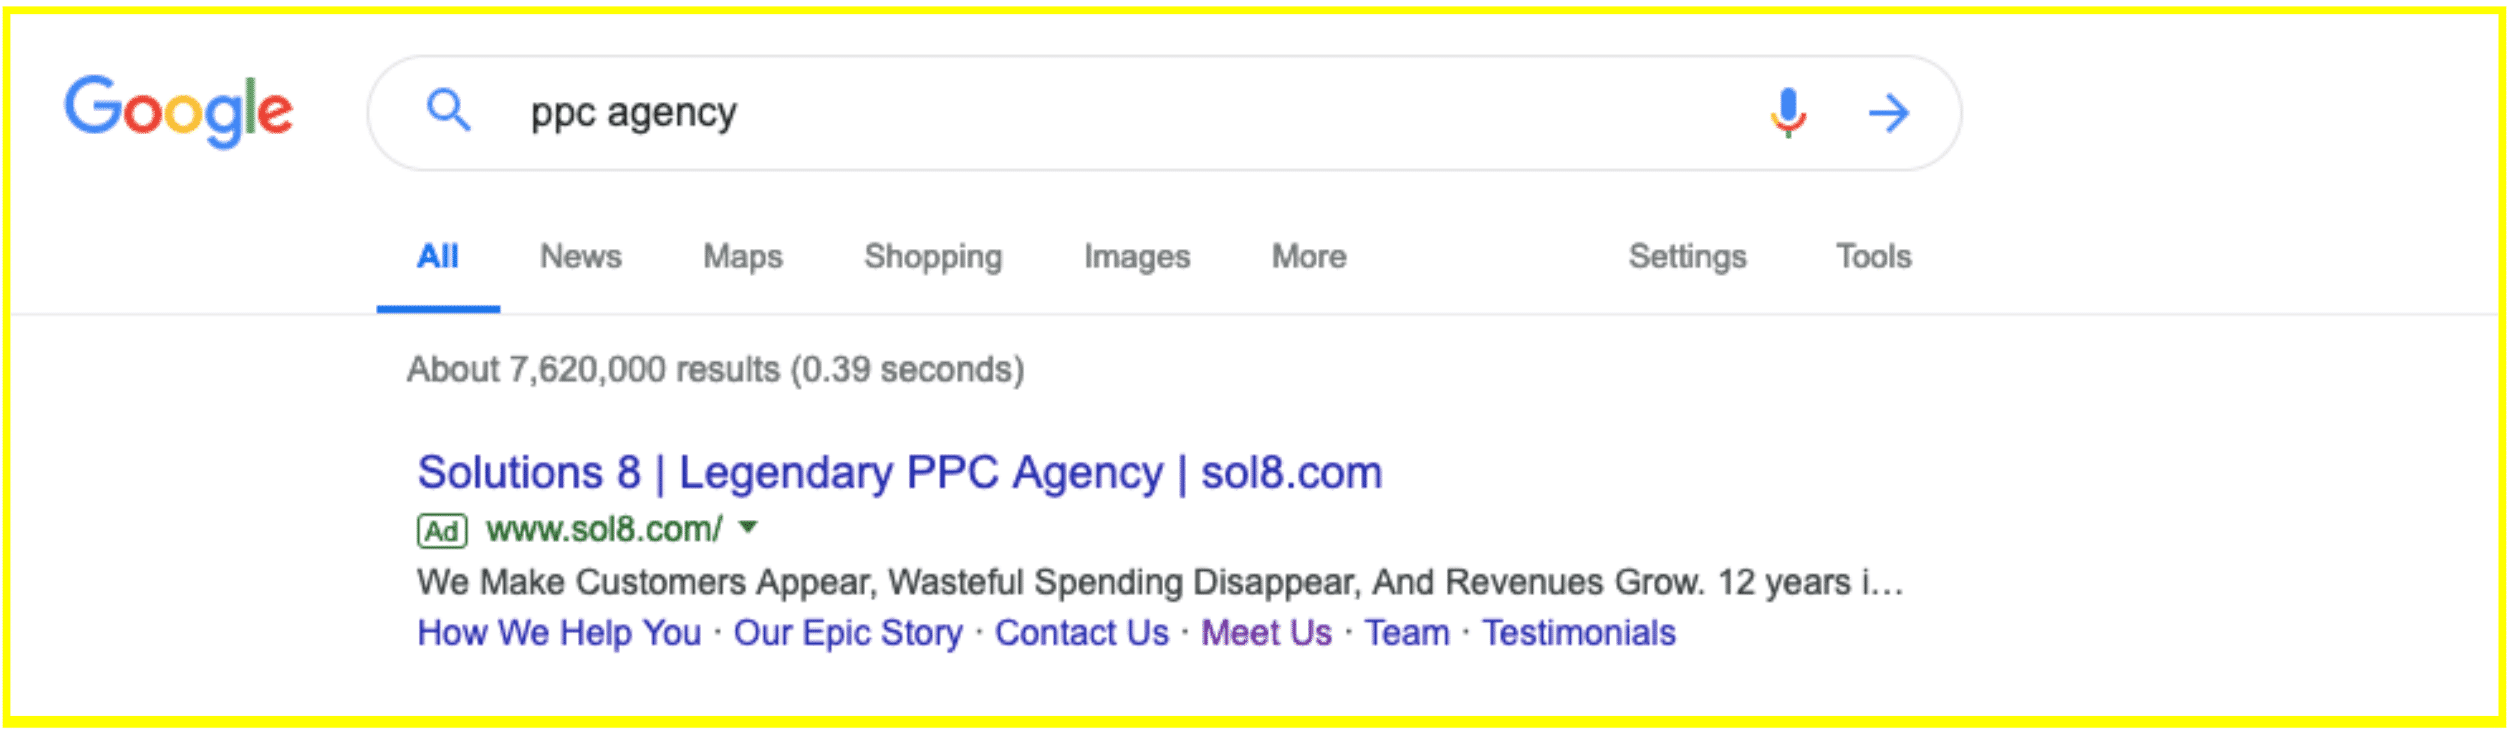 Google Ads Search results for ppc agency